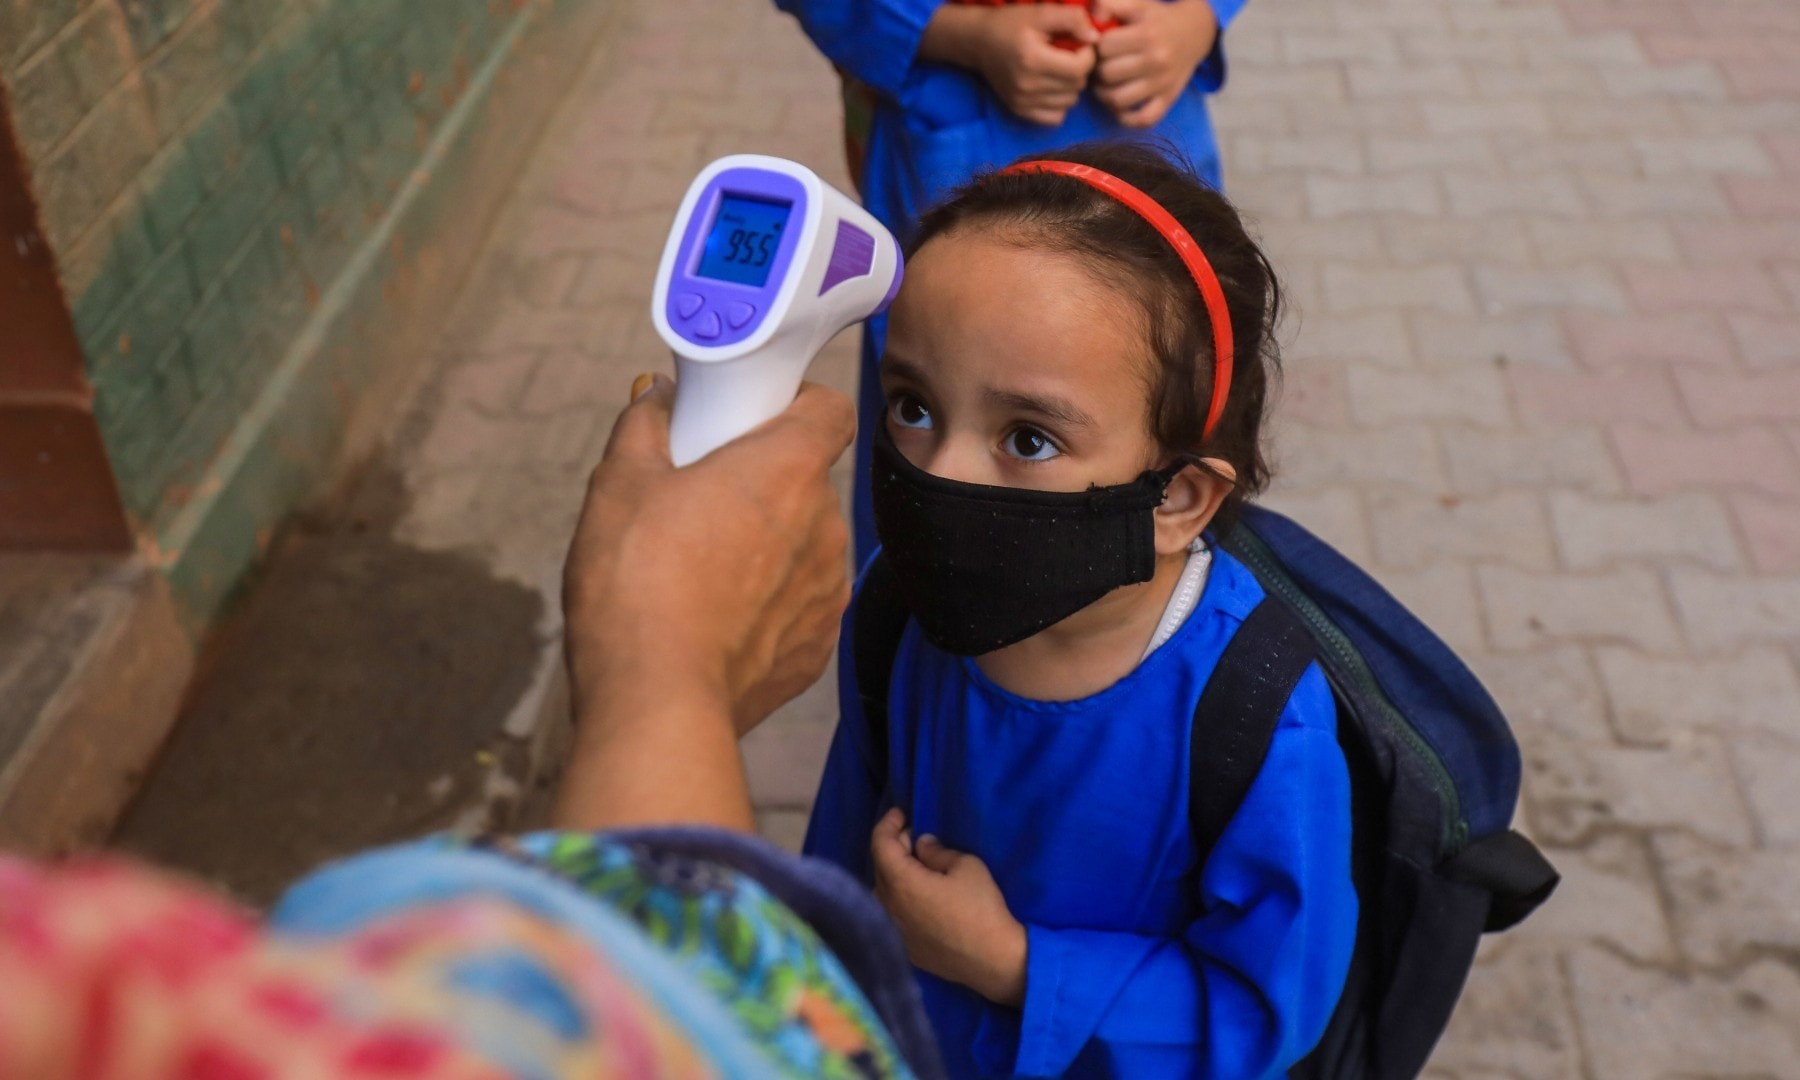 A student wears a protective mask as she gets her temperature checked before entering a class in Peshawar on September 30. — Reuters